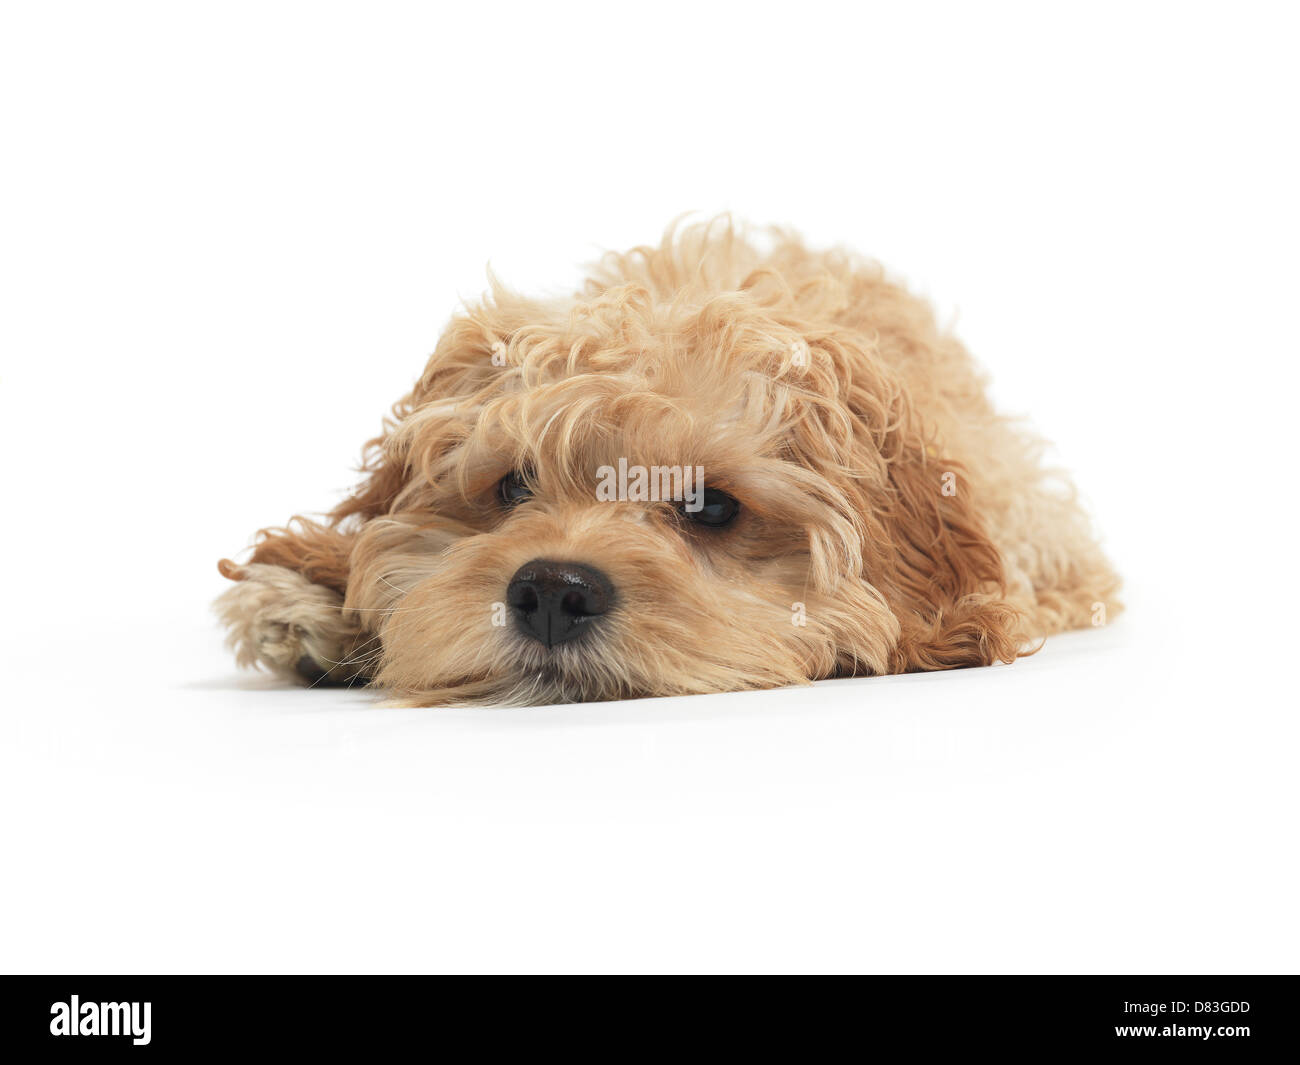 Cockapoo cute cross breed dog of cocker spaniel and a poodle lying down isolated on white background - Stock Image